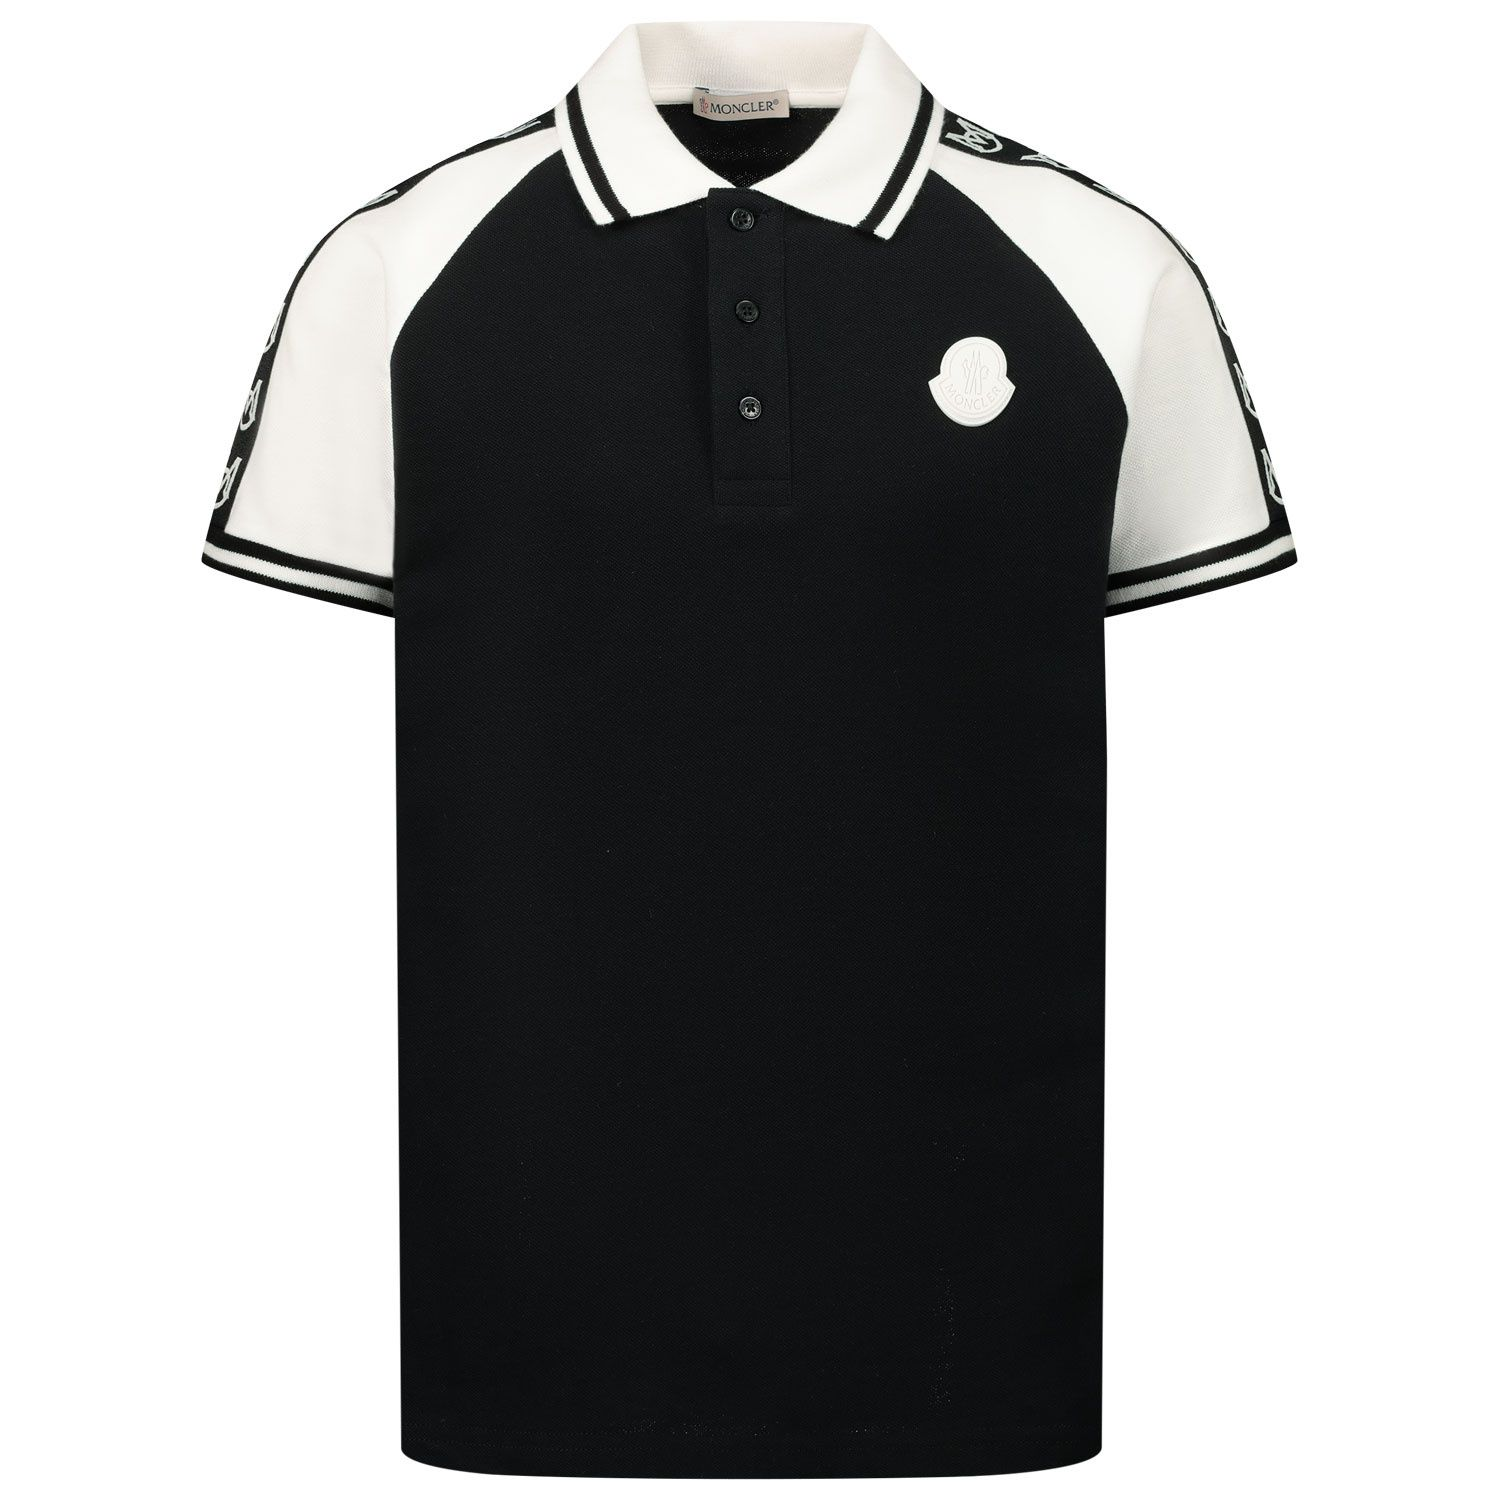 Picture of Moncler 8A71220 kids polo shirt black